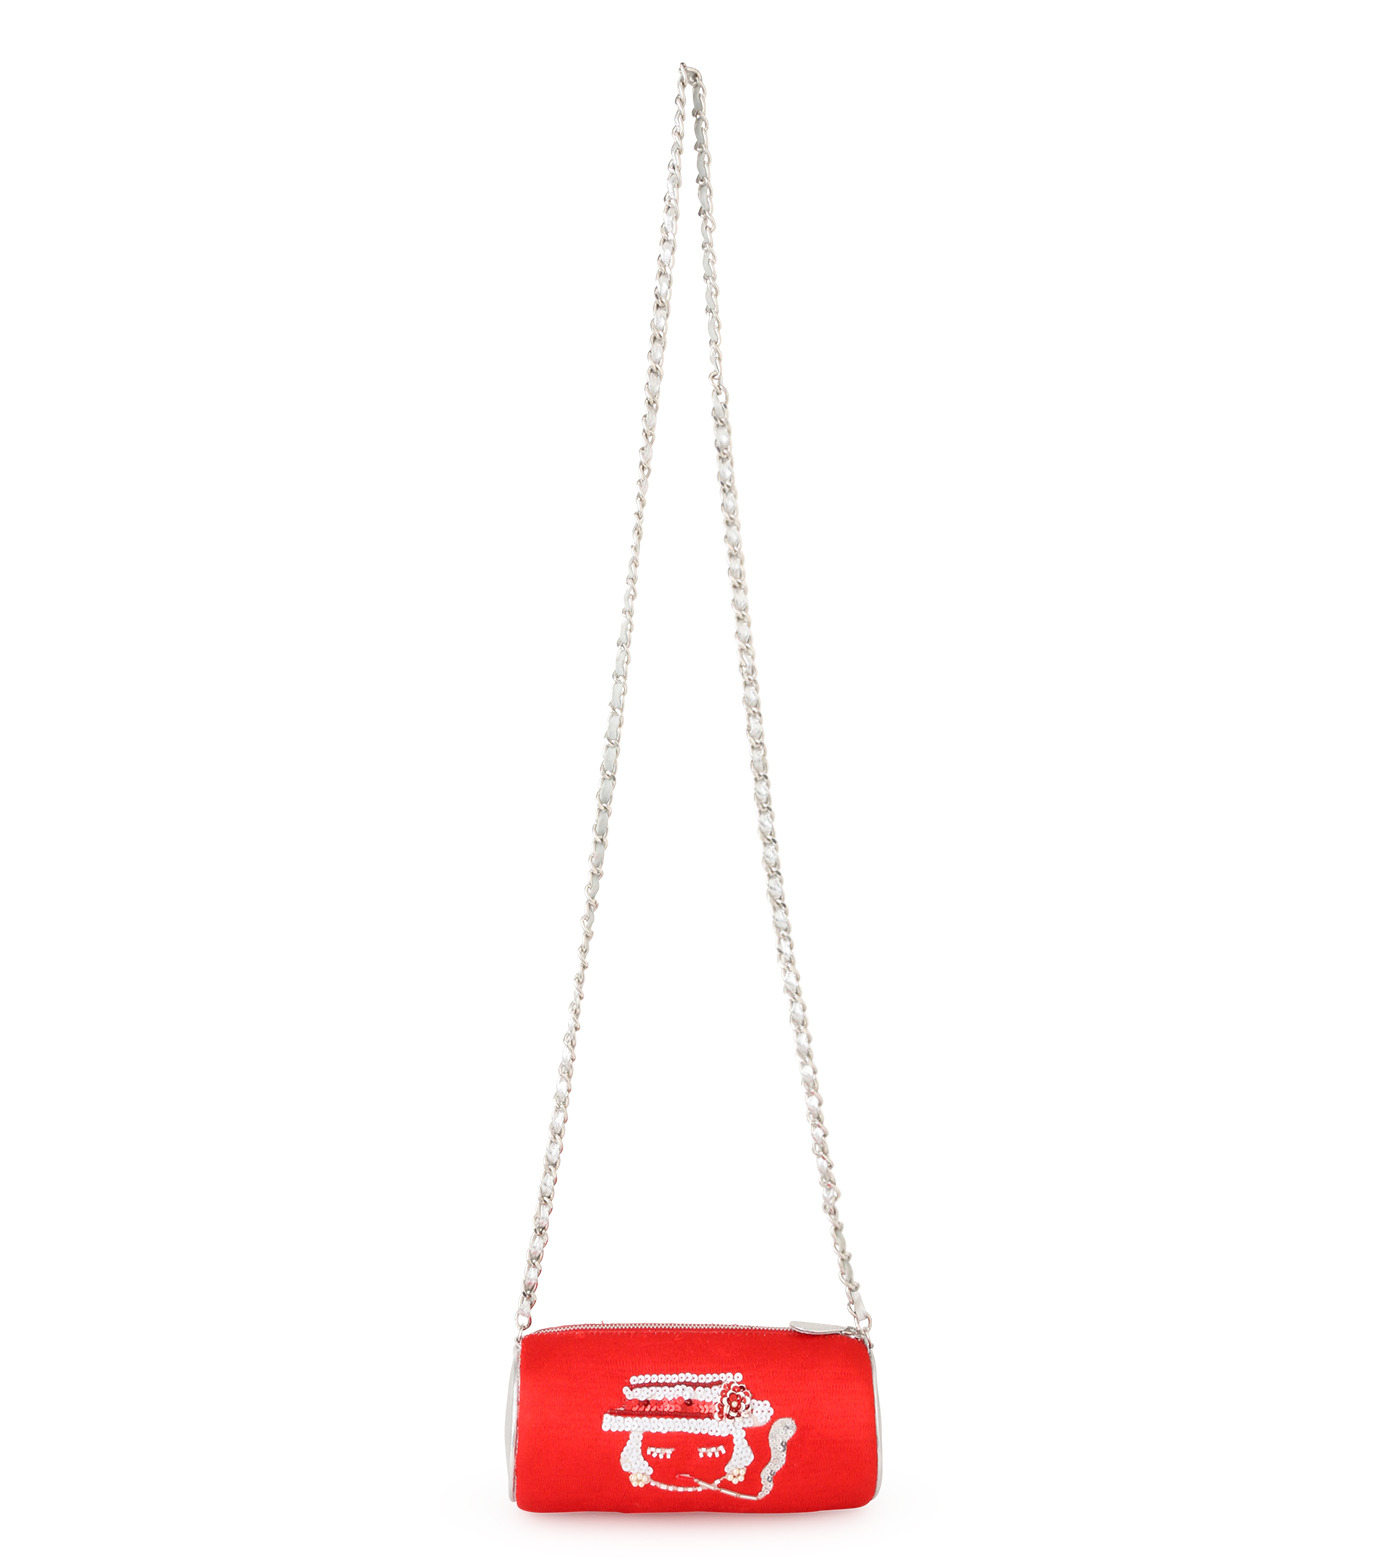 MUA MUA DOLLS()のSoda Bag Coco Cola-RED(ショルダーバッグ/shoulder bag)-Coco-Cola-62 拡大詳細画像3